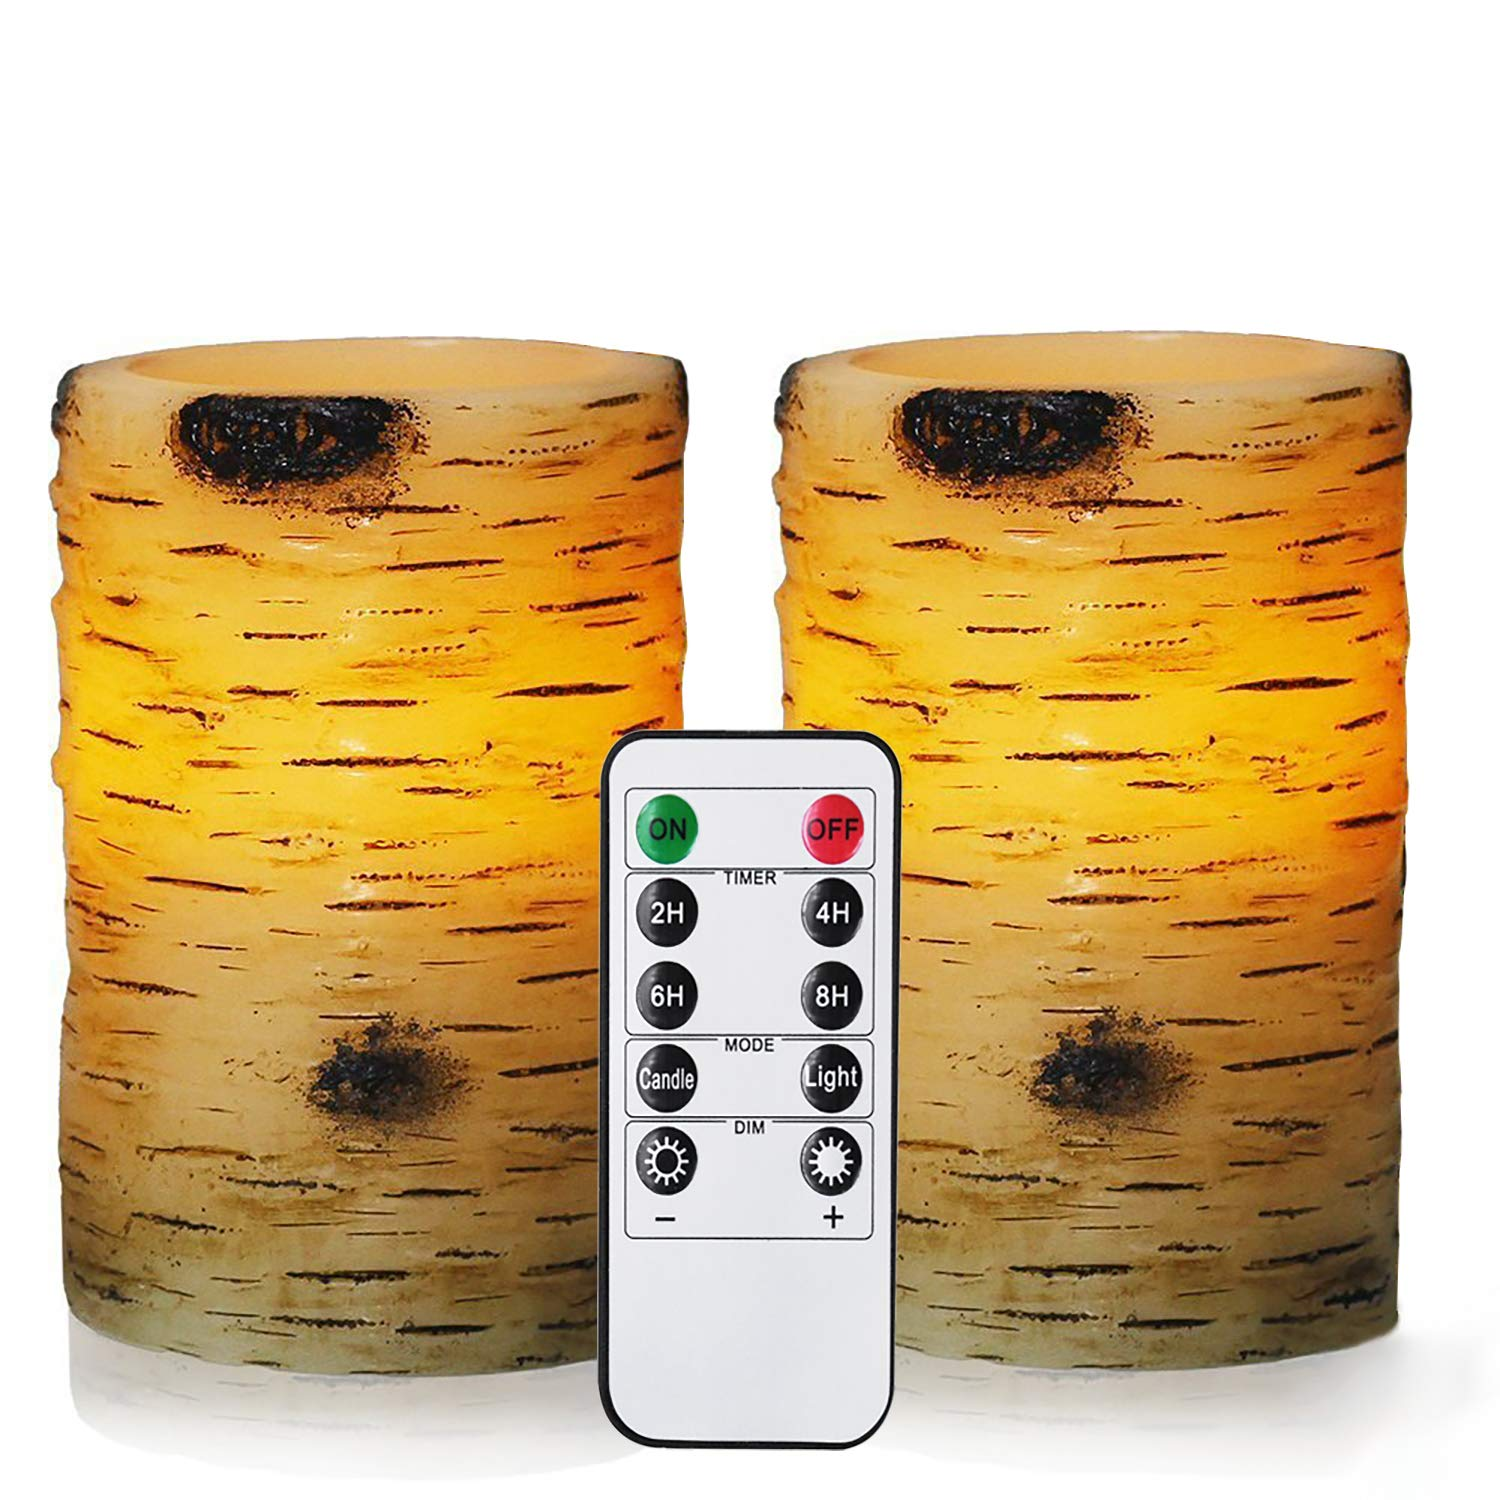 """Bingolife Real Wax Birch Bark Effect Flameless LED Candles 3.25"""" x 5"""" with Remote Control & Timer - Set of 2 AX-AY-ABHI-117039"""